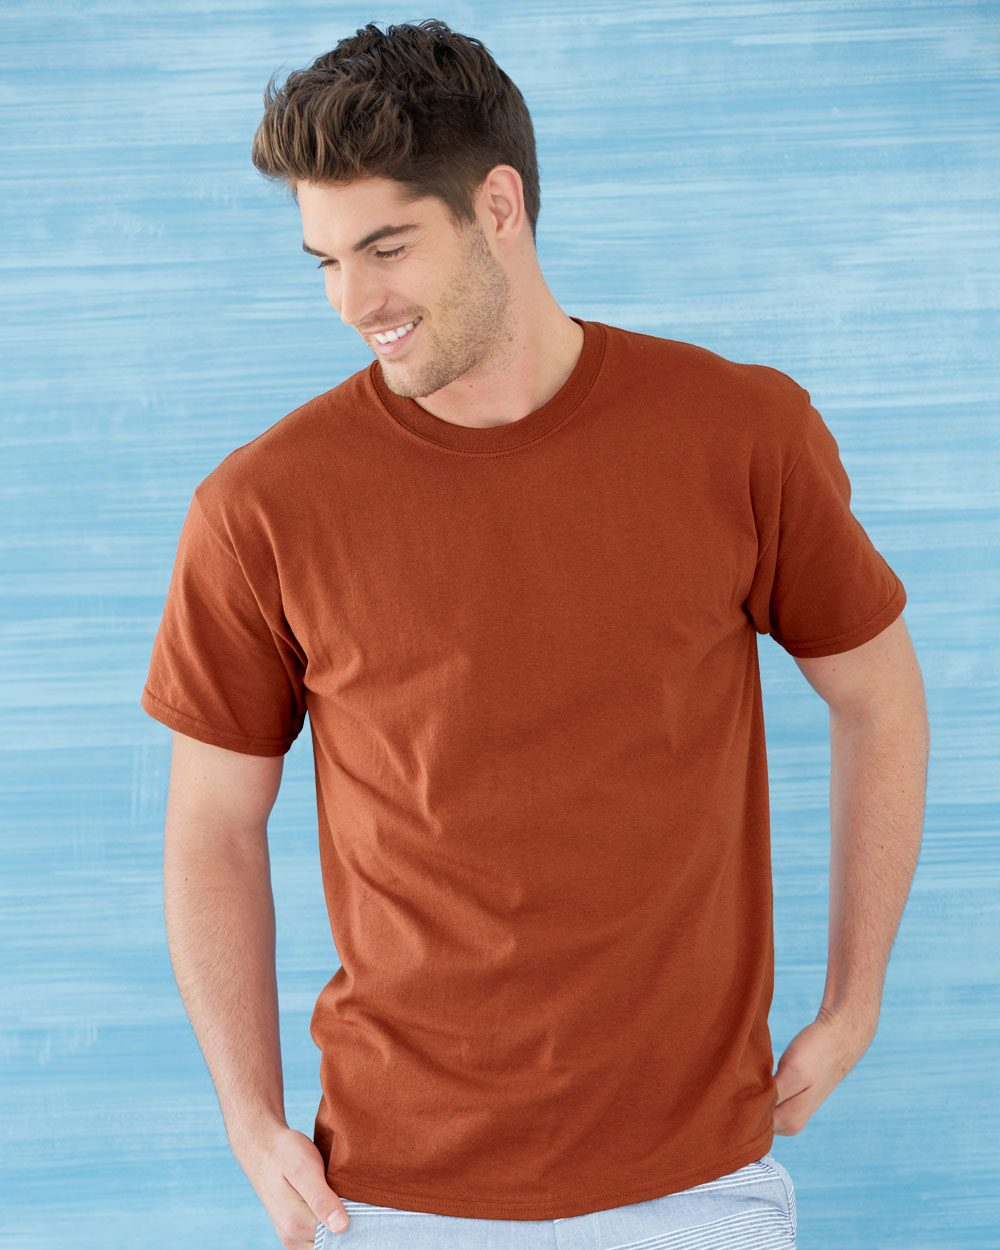 Model wearing Gildan Ultra 2000 Cotton T-Shirt